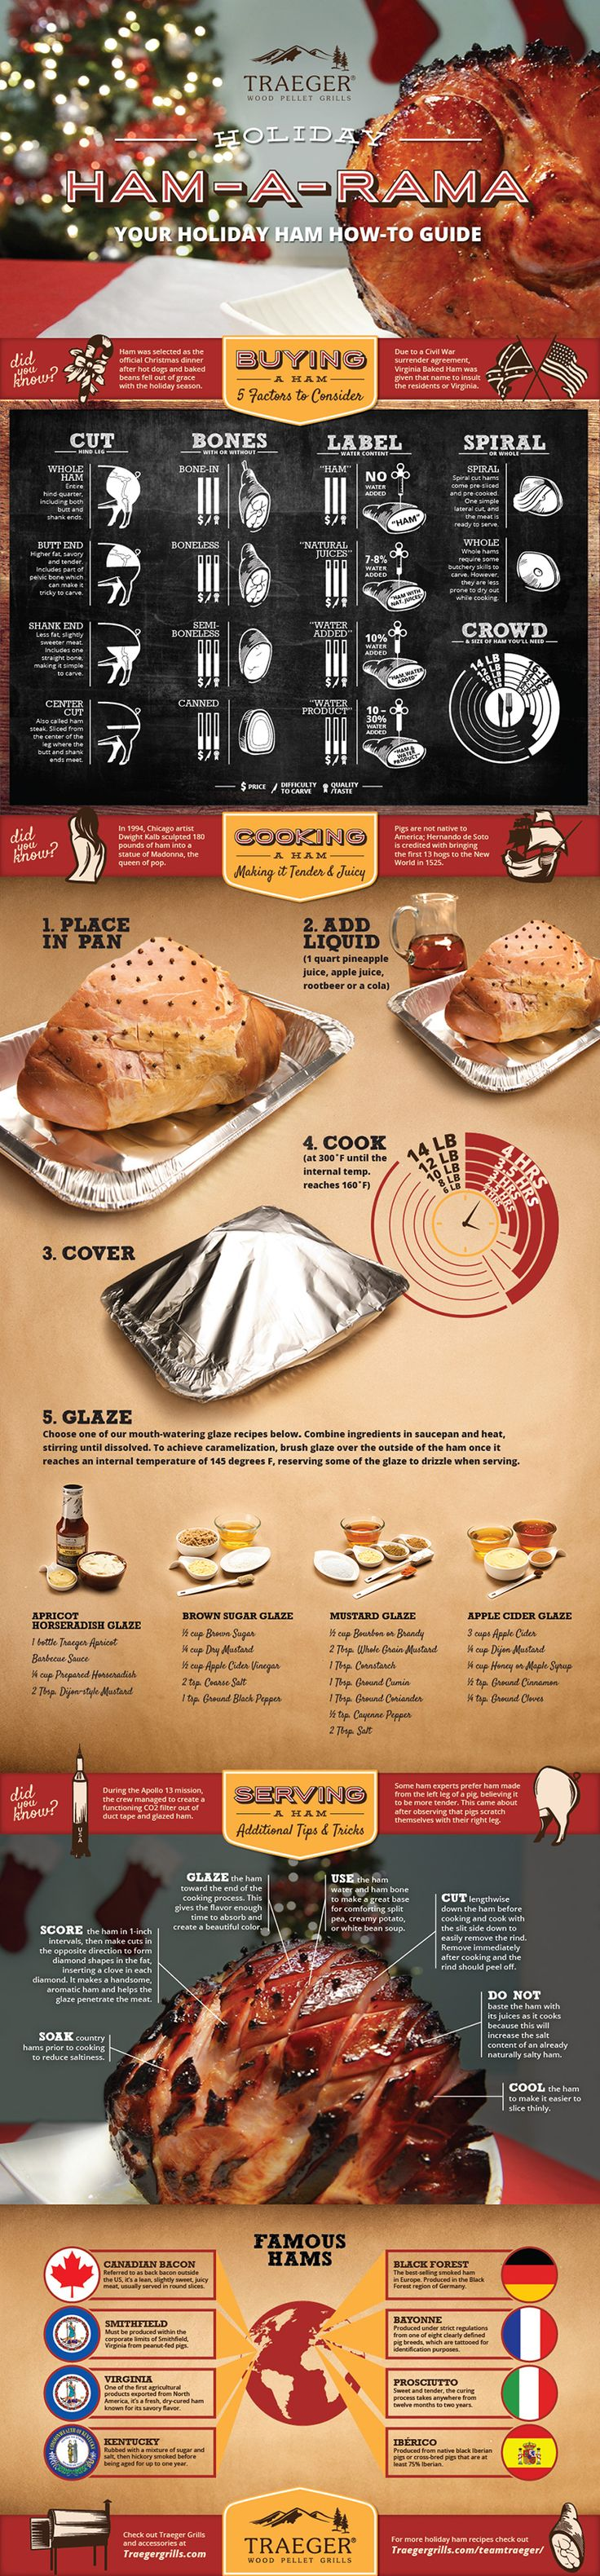 Traeger Grills: Everything You Need To Know About Your Holiday Ham.This is the ultimate ham guide! Find out what ham is right for you, what cuts of ham are out there, cook times, and glazes.